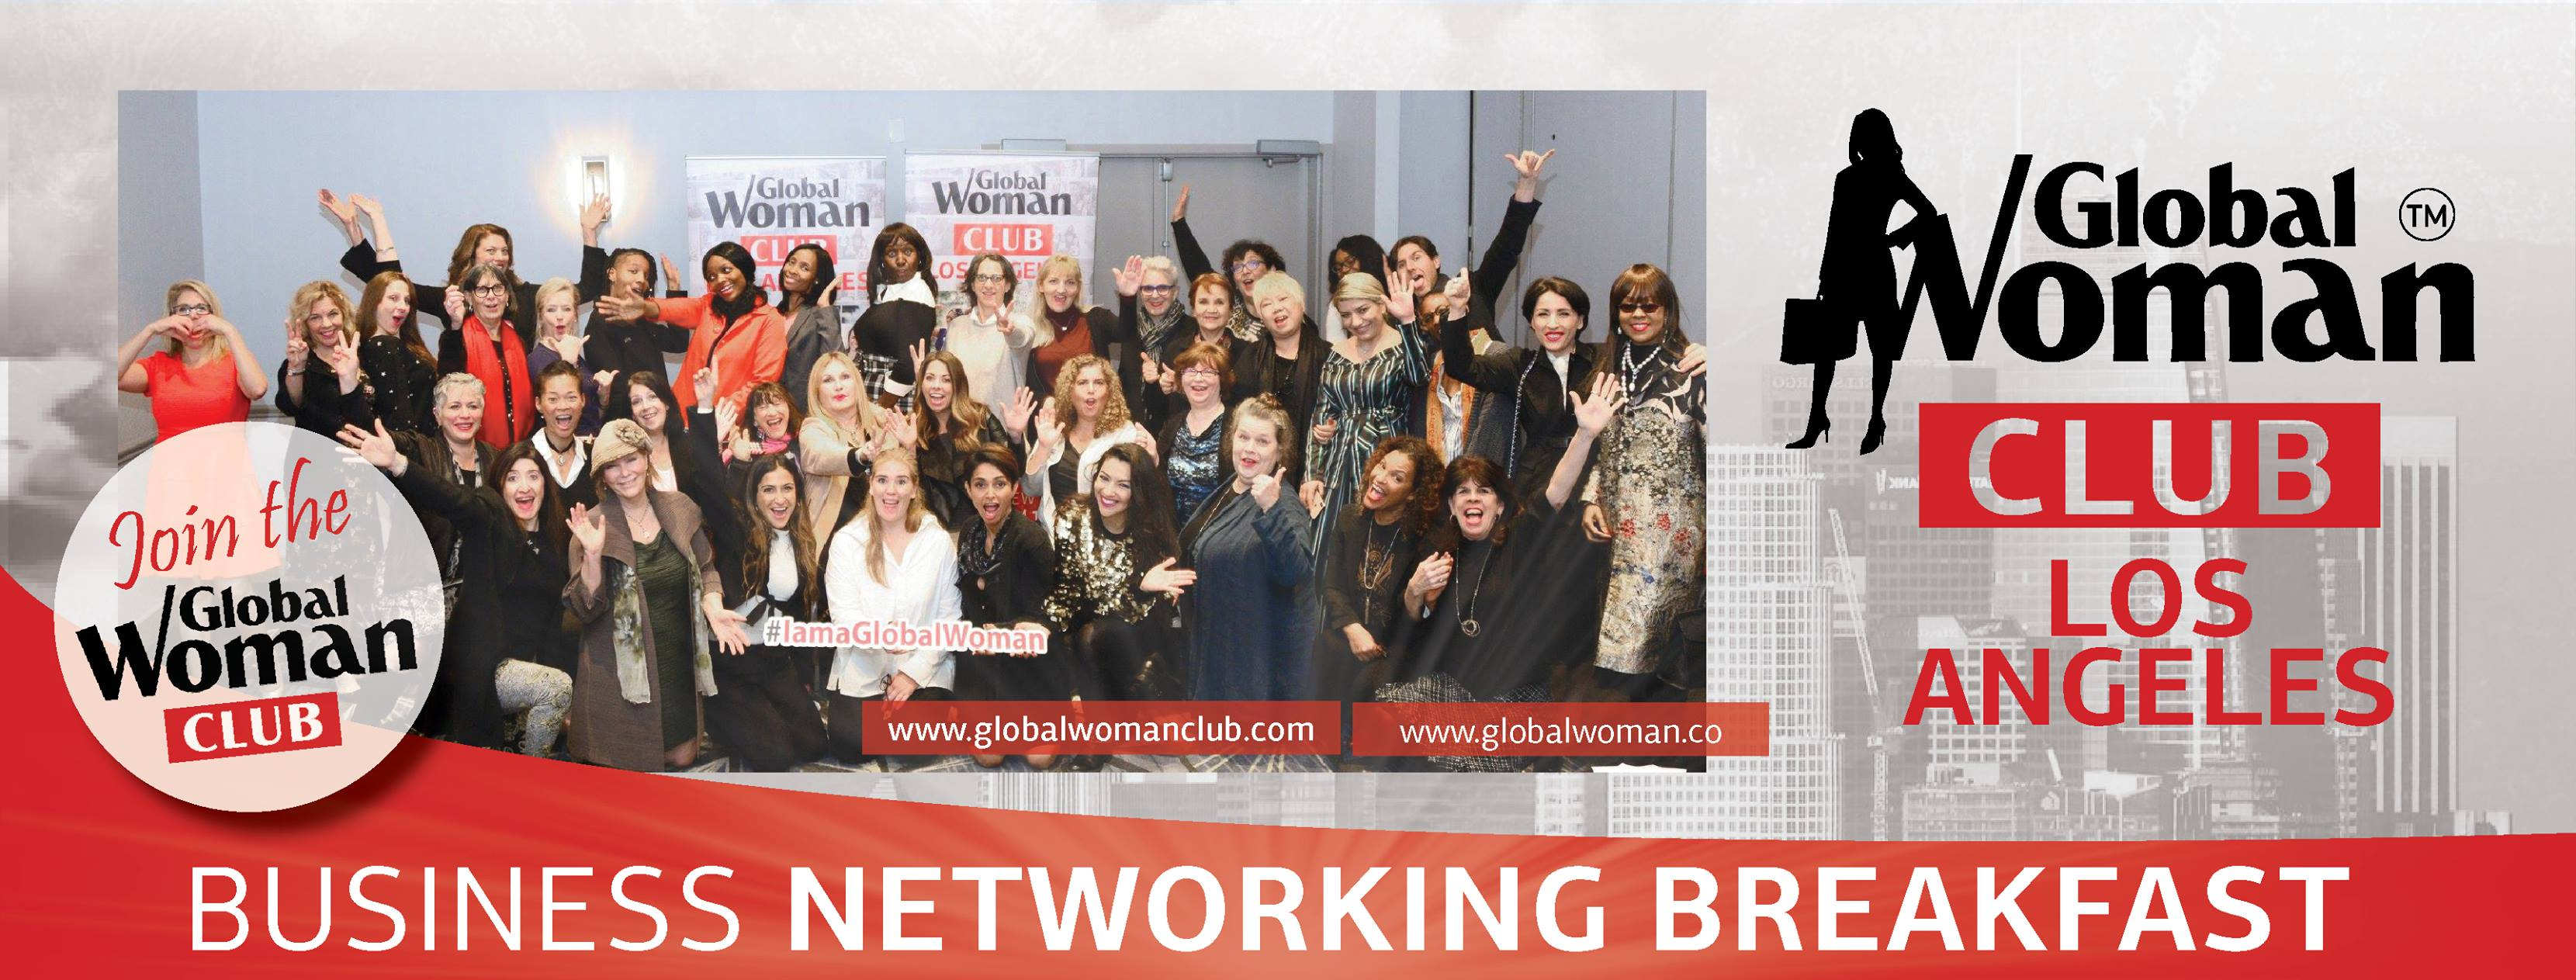 GLOBAL WOMAN CLUB Los Angeles : BUSINESS NETWORKING MEETING - March